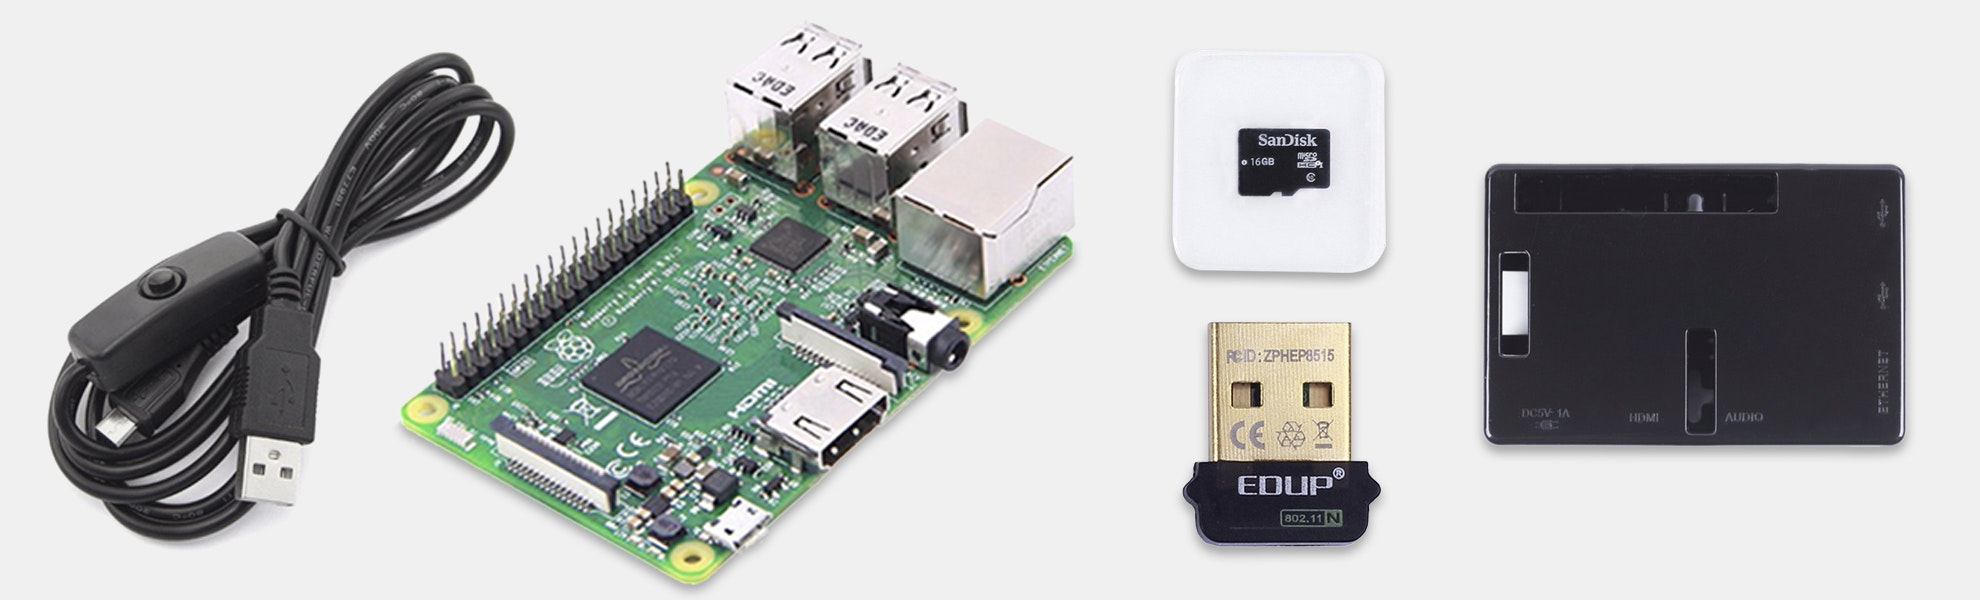 Seeed Raspberry Pi 3 B w/ Starter Kit